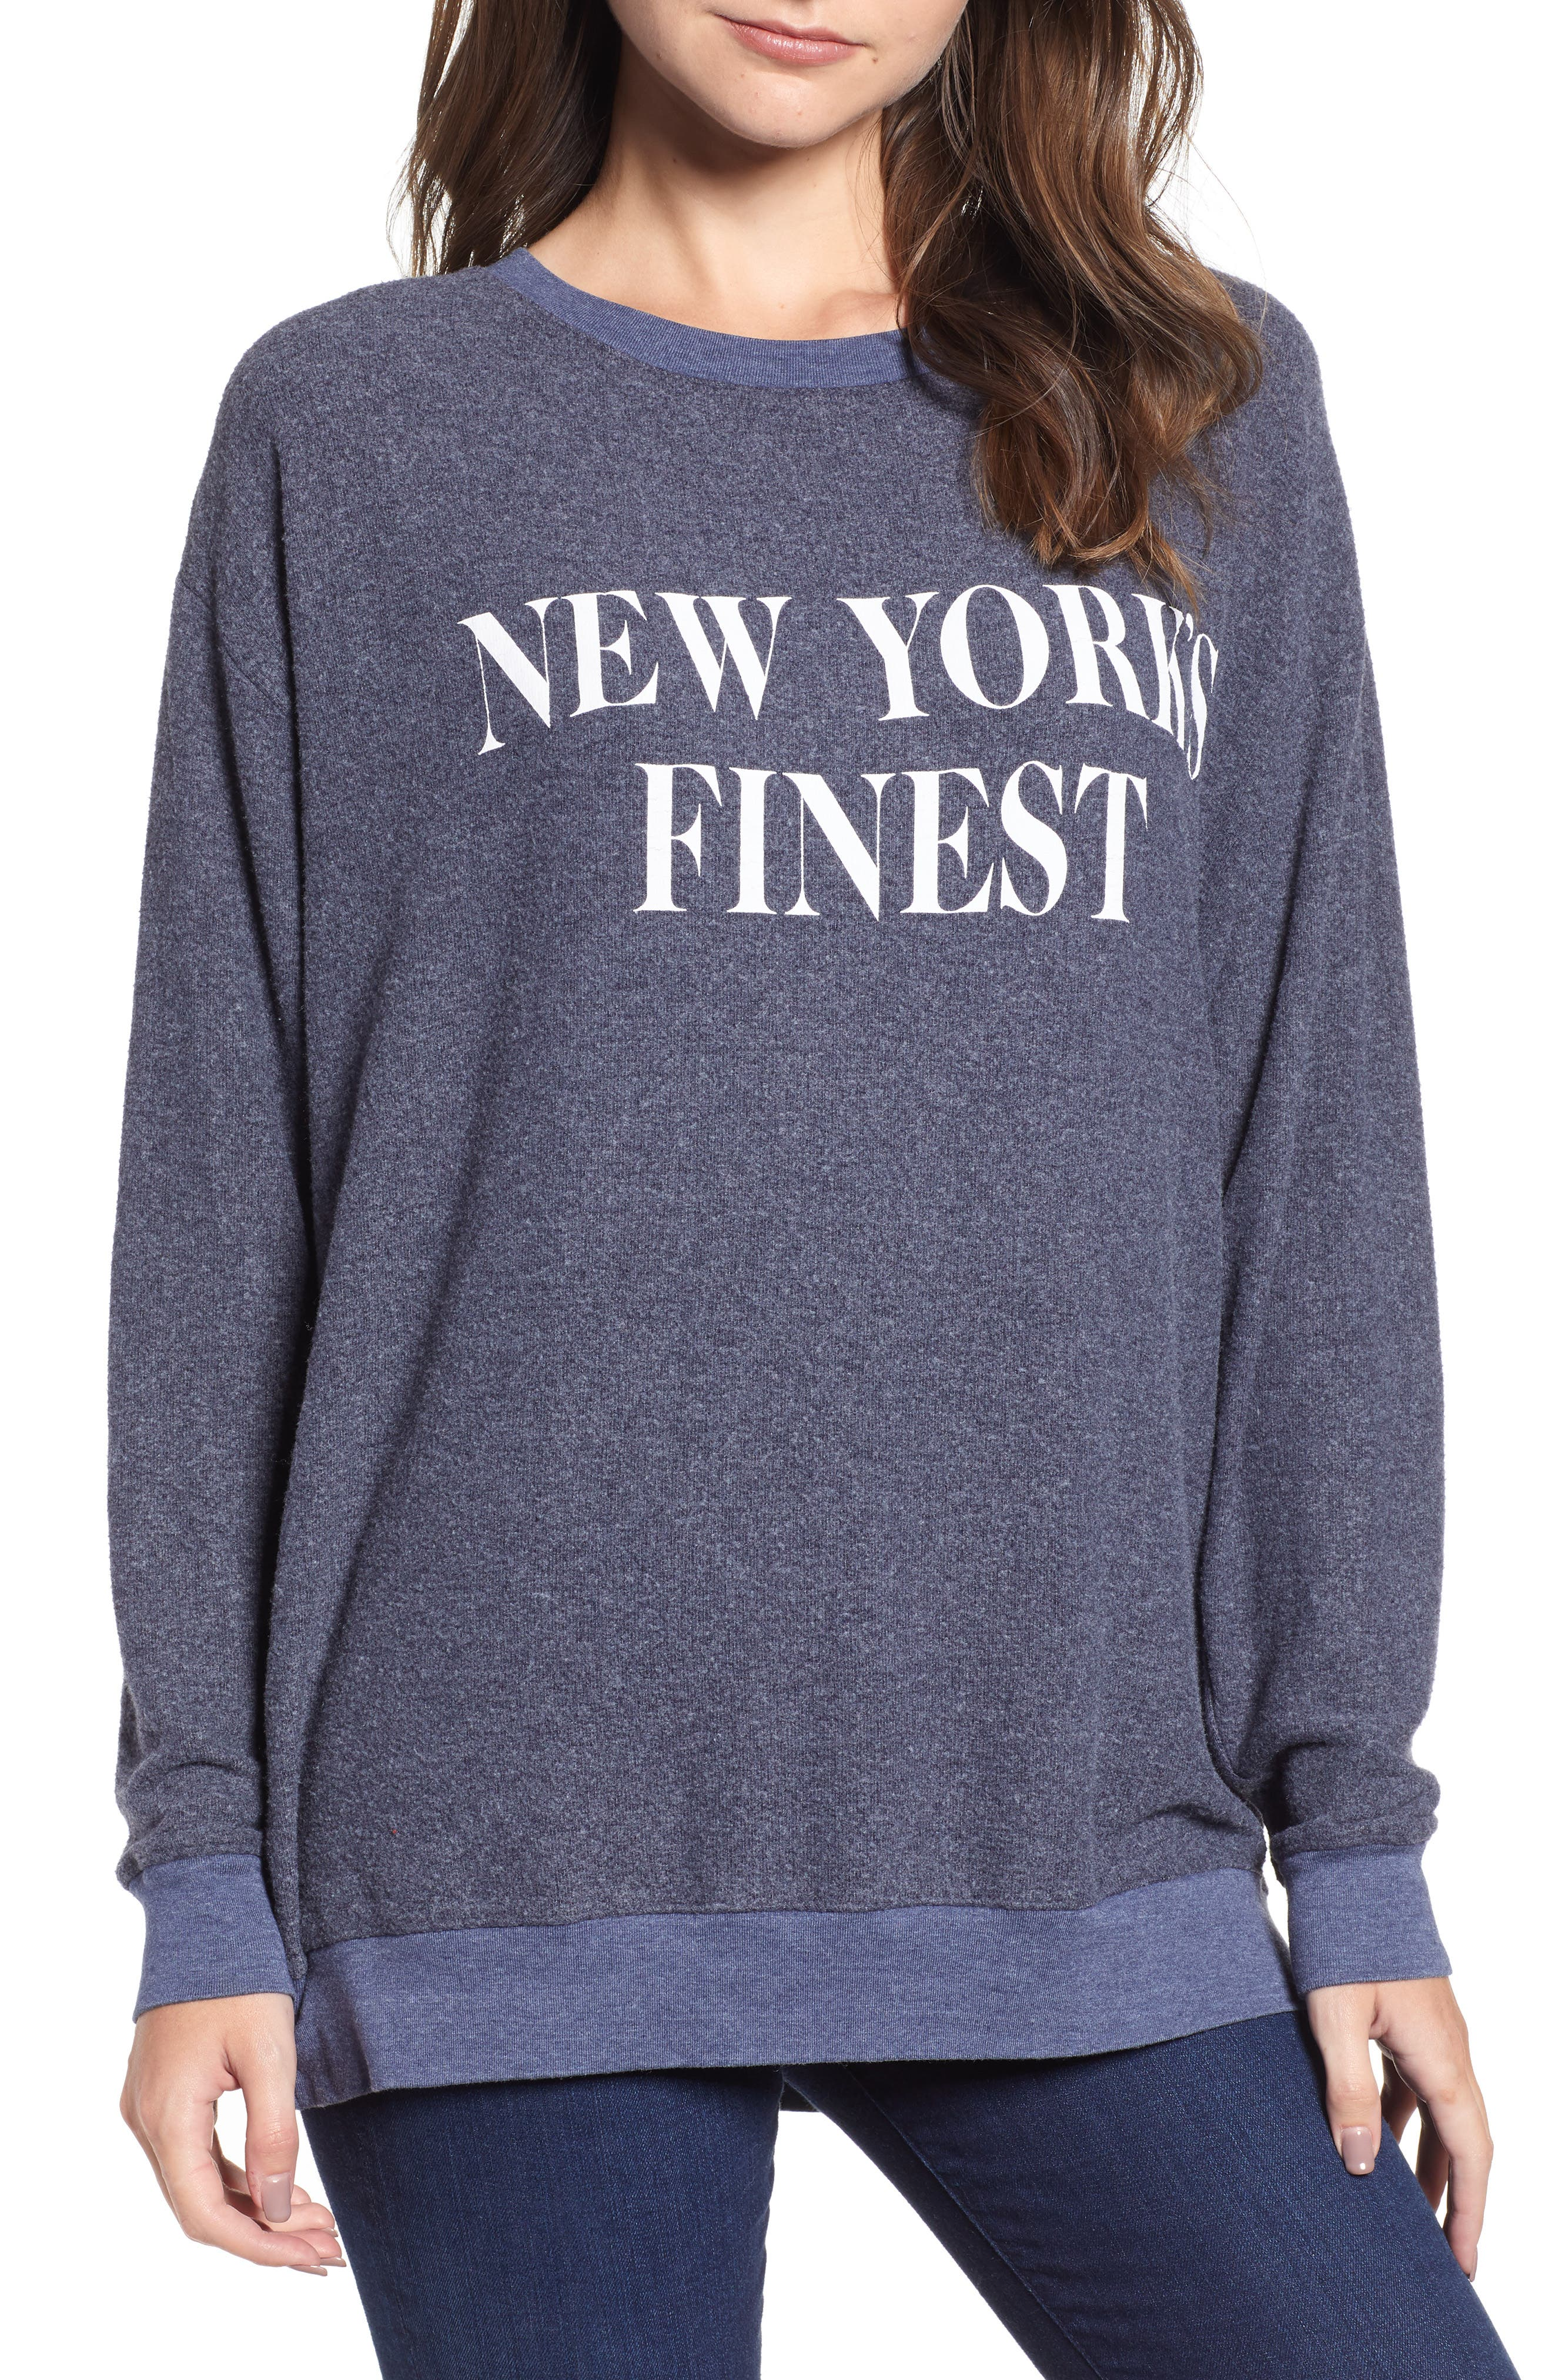 Roadtrip - New York's Finest Pullover,                             Main thumbnail 1, color,                             020